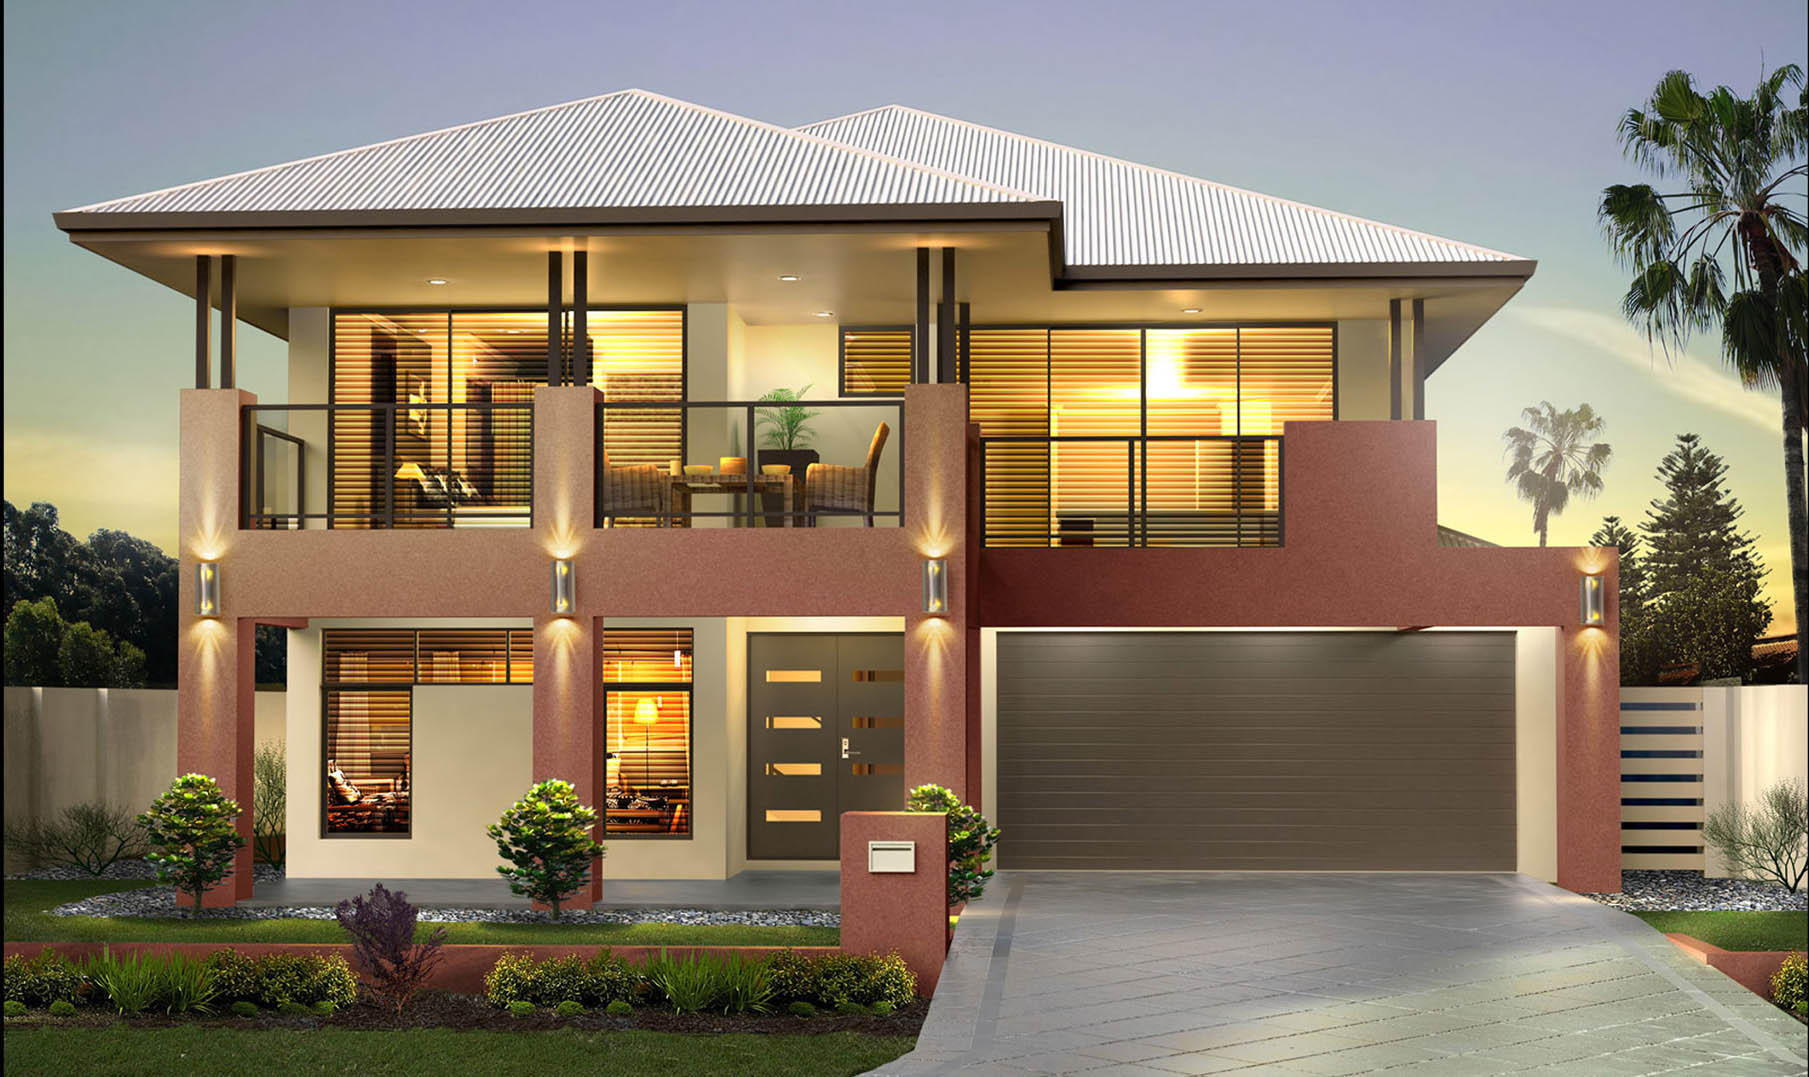 San remo series 1 upstairs living new 2 storey homes perth for Living house